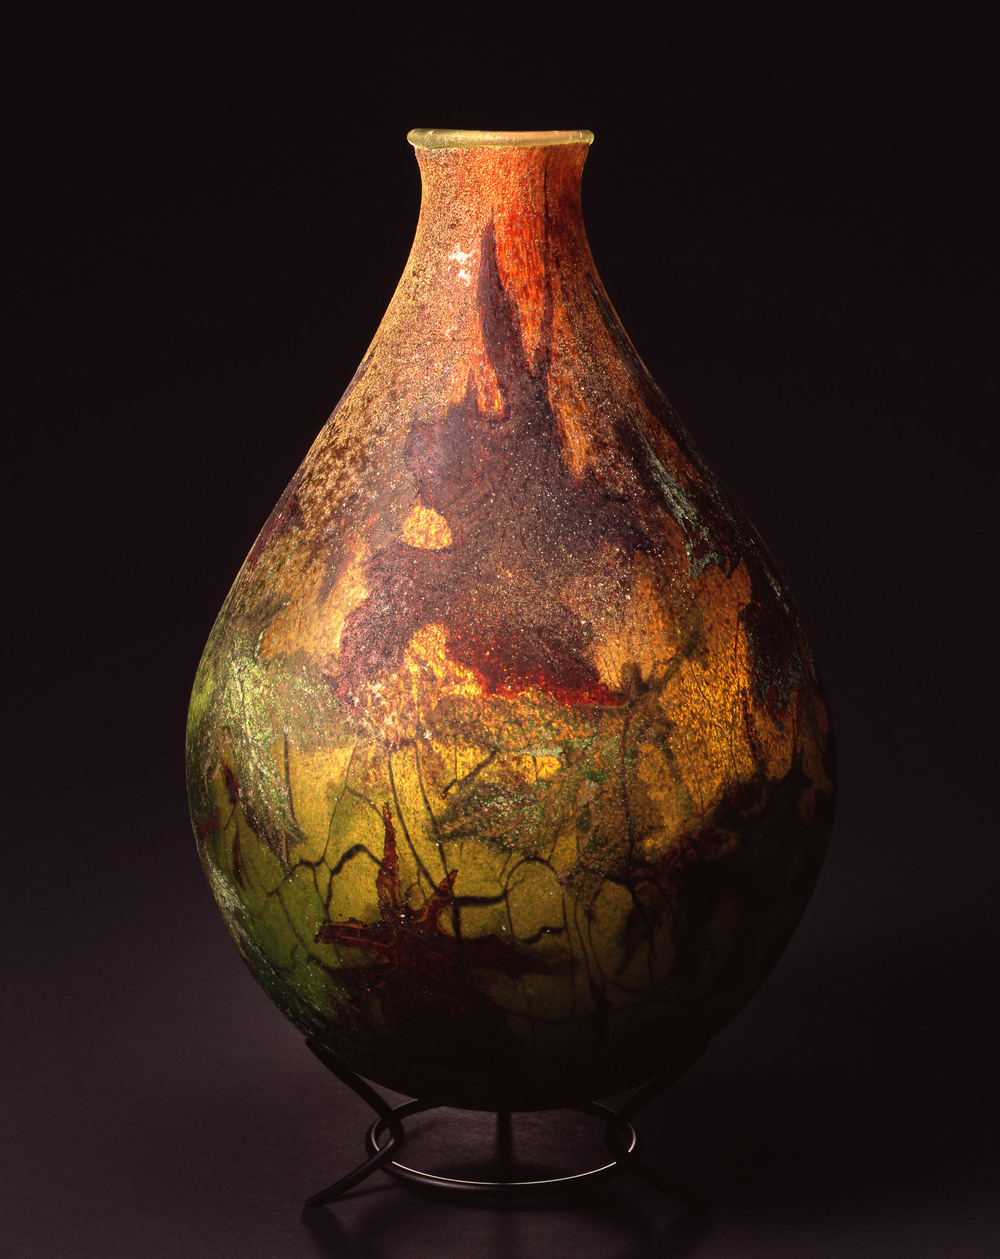 William Morris,  Vessel with Oak Leaves  (2004, glass, 15 1/4 x 10 x 10 inches), WM.29